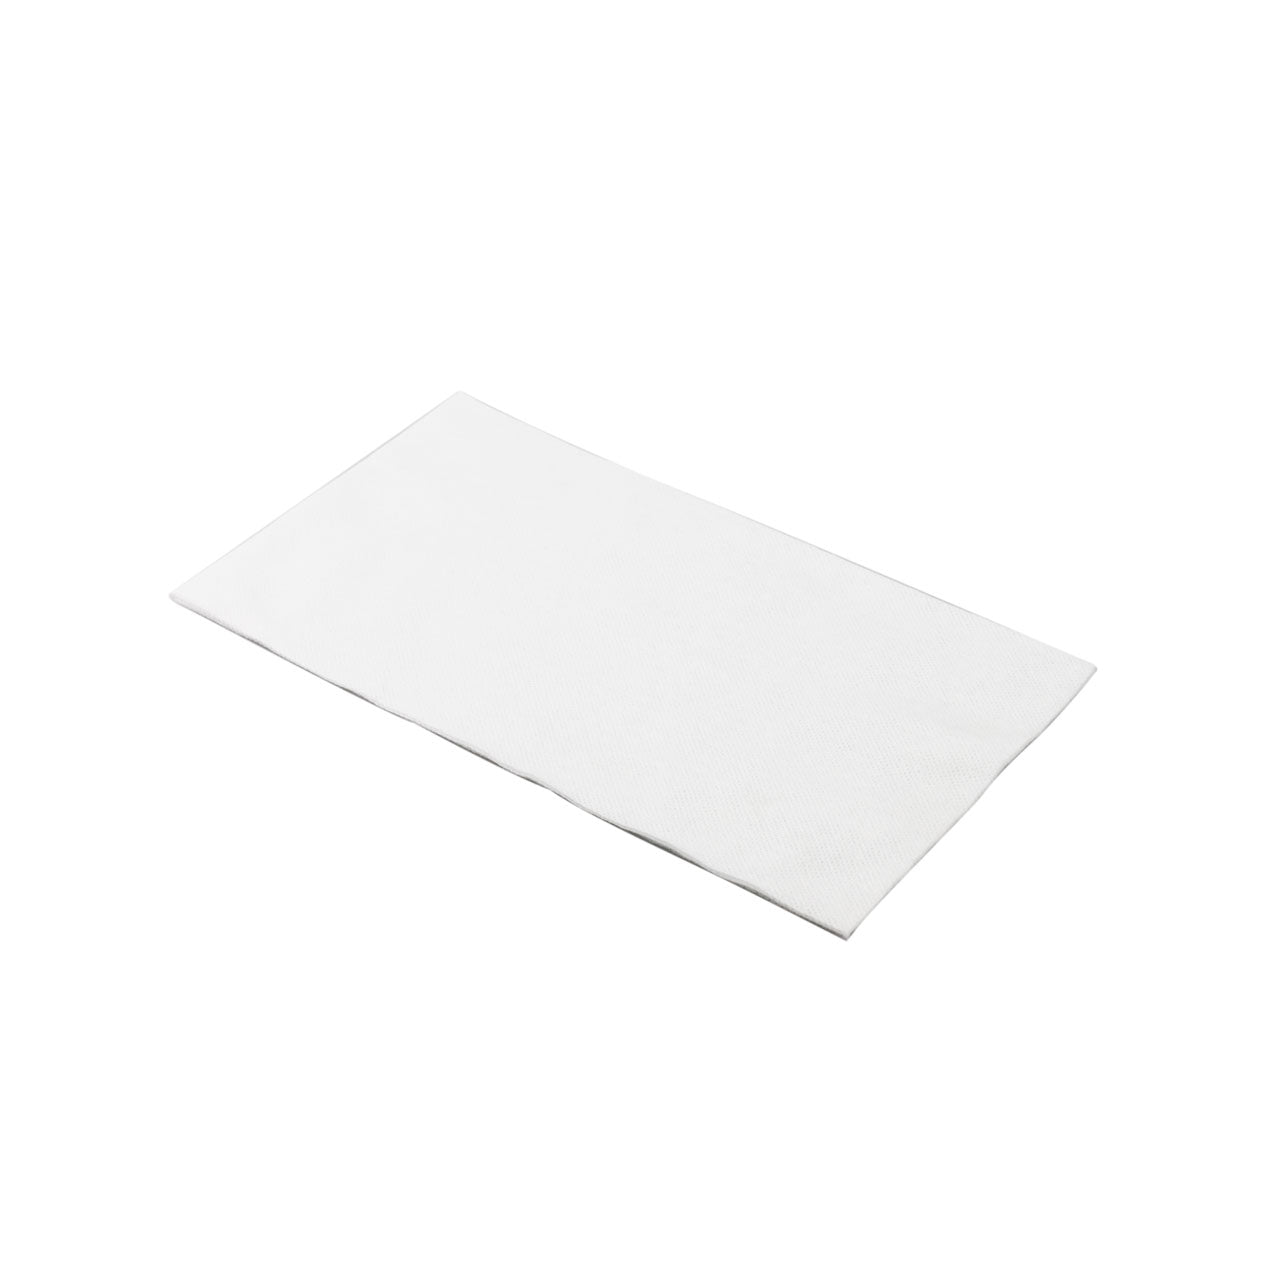 "Antimicrobial Food Service Towels White 24"" x 13"" (50 pcs/pack)"